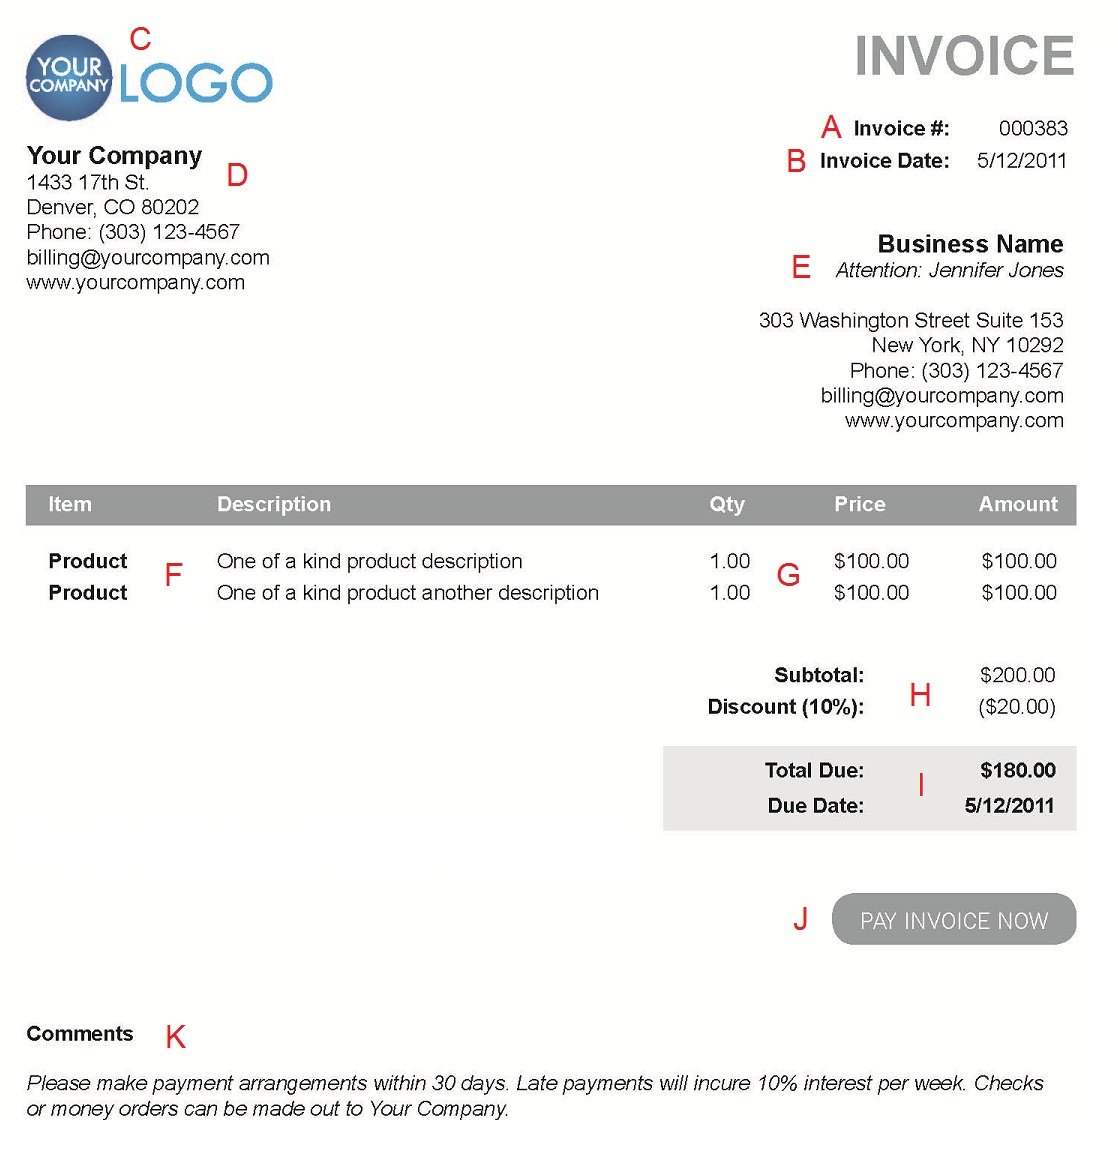 Centralasianshepherdus  Ravishing The  Different Sections Of An Electronic Payment Invoice With Foxy A  With Cute Free Printable Invoices Forms Also Sample Auto Repair Invoice In Addition Due Upon Receipt Invoice And Zoho Free Invoice As Well As Invoice Letter Template For Professional Services Additionally Creating Invoice In Excel From Paysimplecom With Centralasianshepherdus  Foxy The  Different Sections Of An Electronic Payment Invoice With Cute A  And Ravishing Free Printable Invoices Forms Also Sample Auto Repair Invoice In Addition Due Upon Receipt Invoice From Paysimplecom